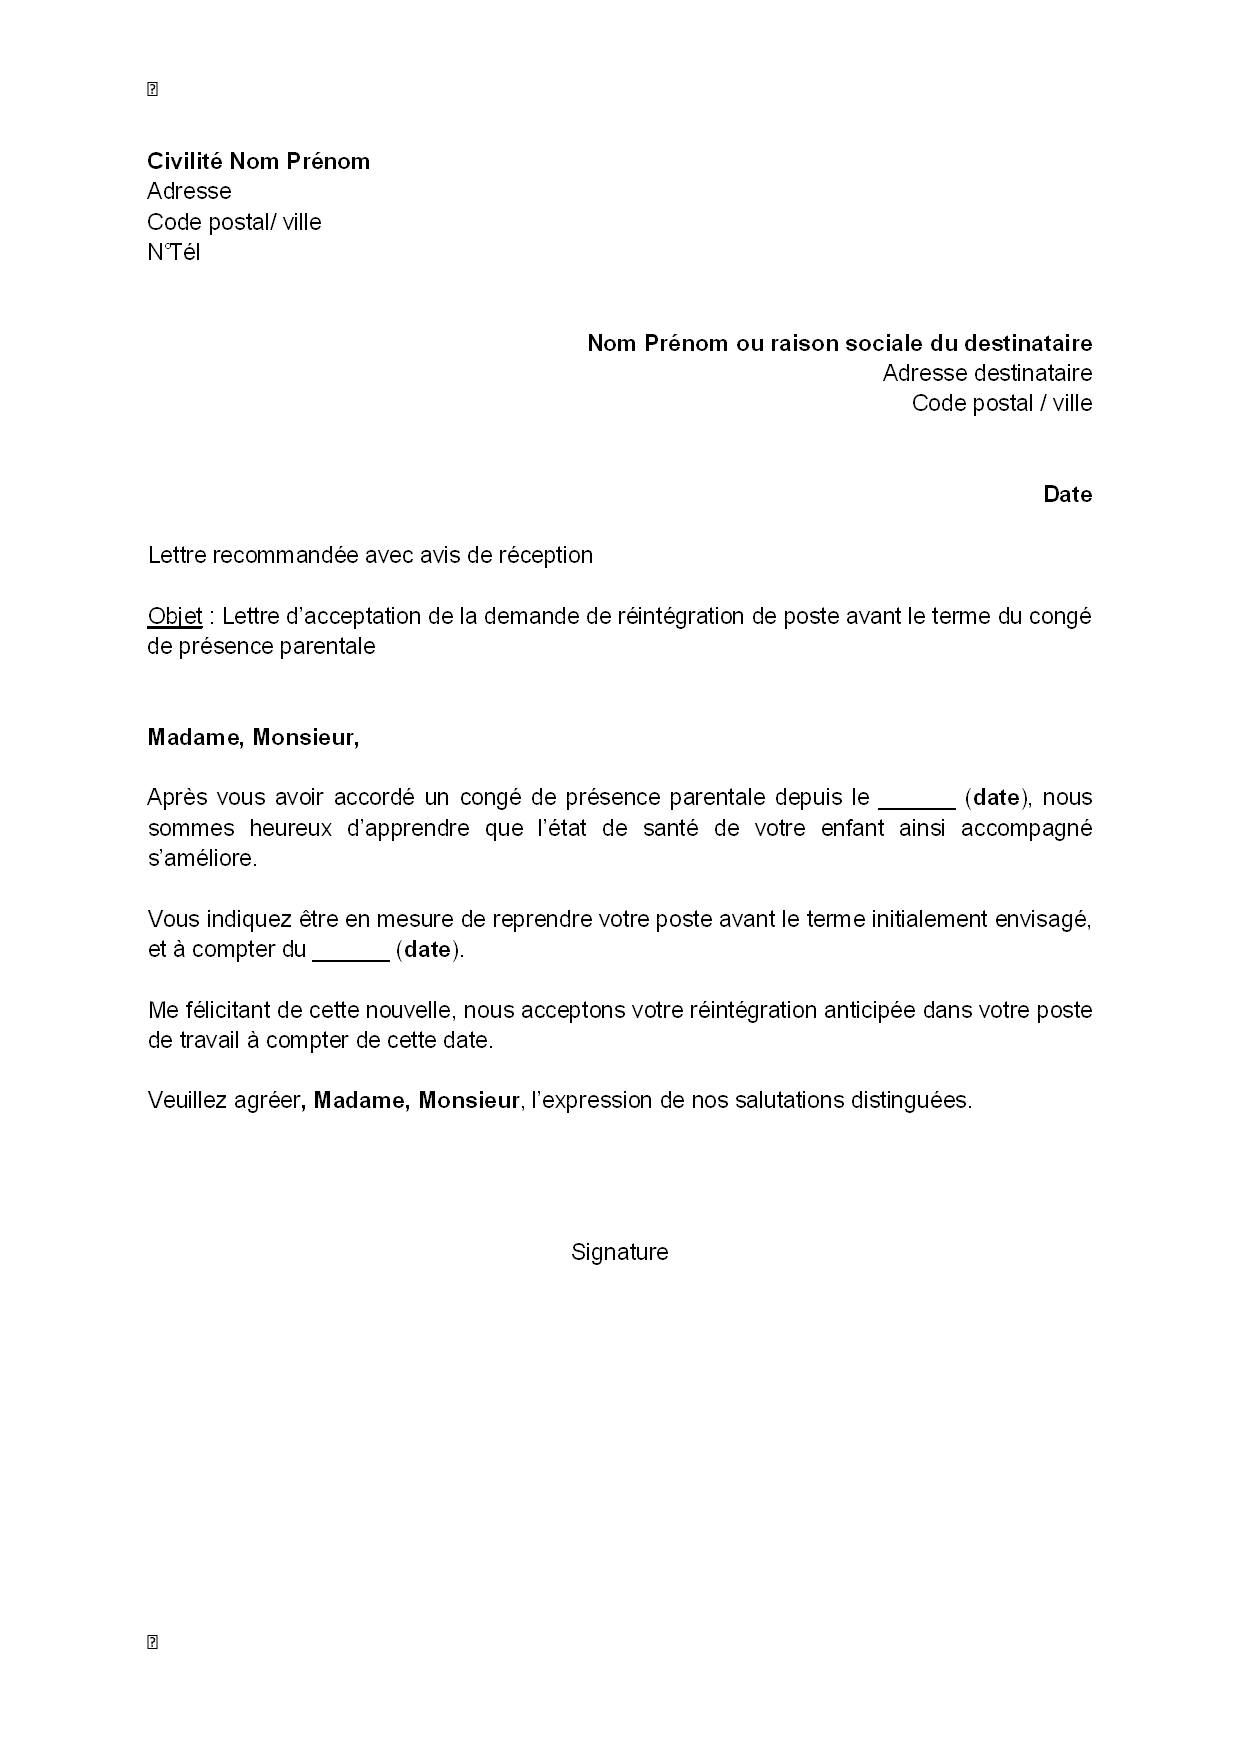 Modele attestation heritier document online - Attestation de porte fort modele lettre ...